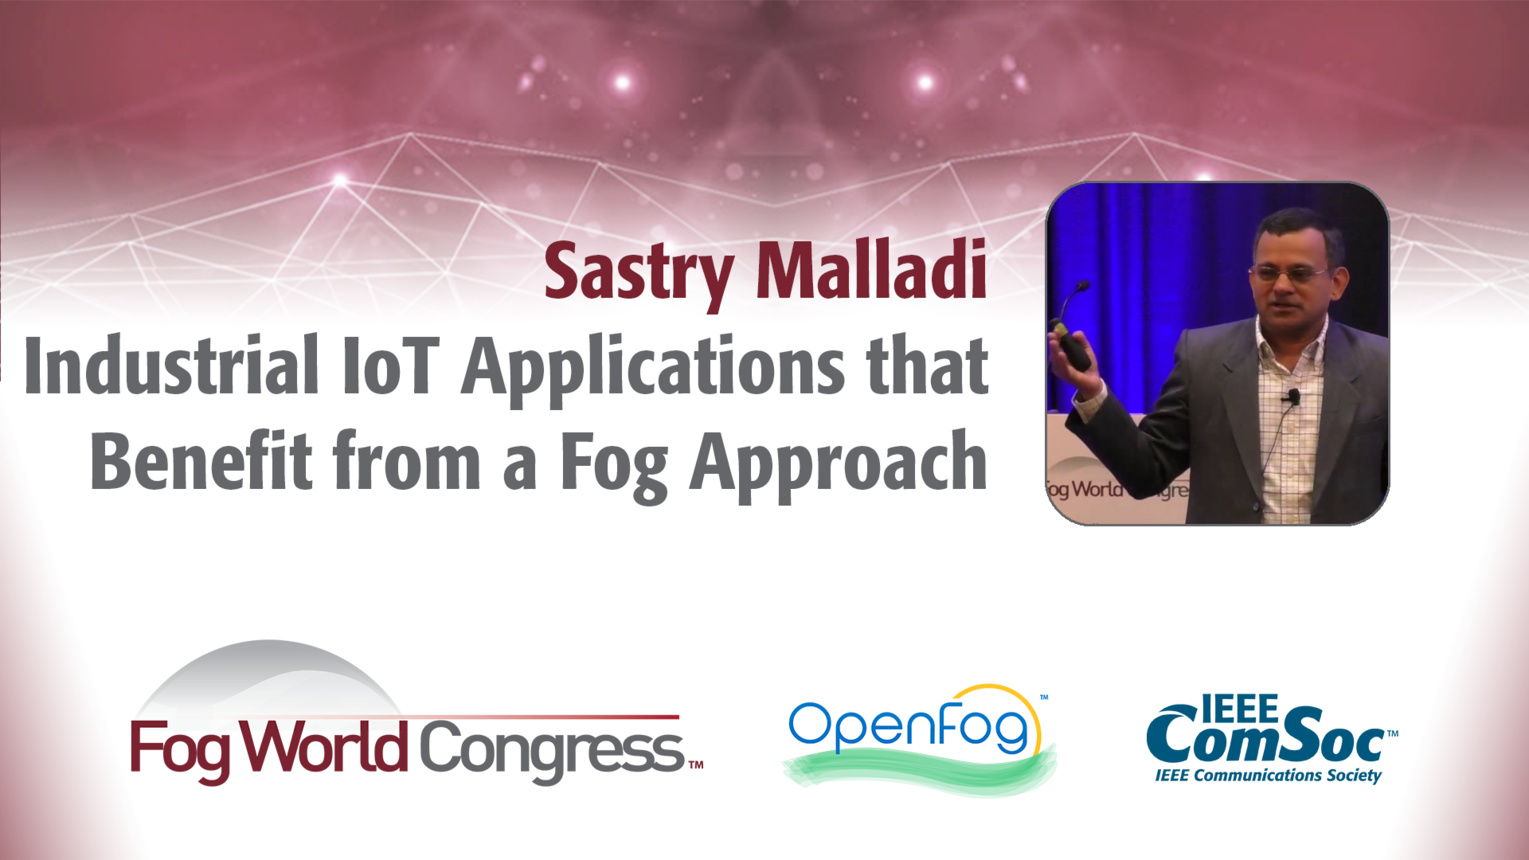 Industrial IoT Applications that Benefit from a Fog Approach - Sastry Malladi, Fog World Congress 2017